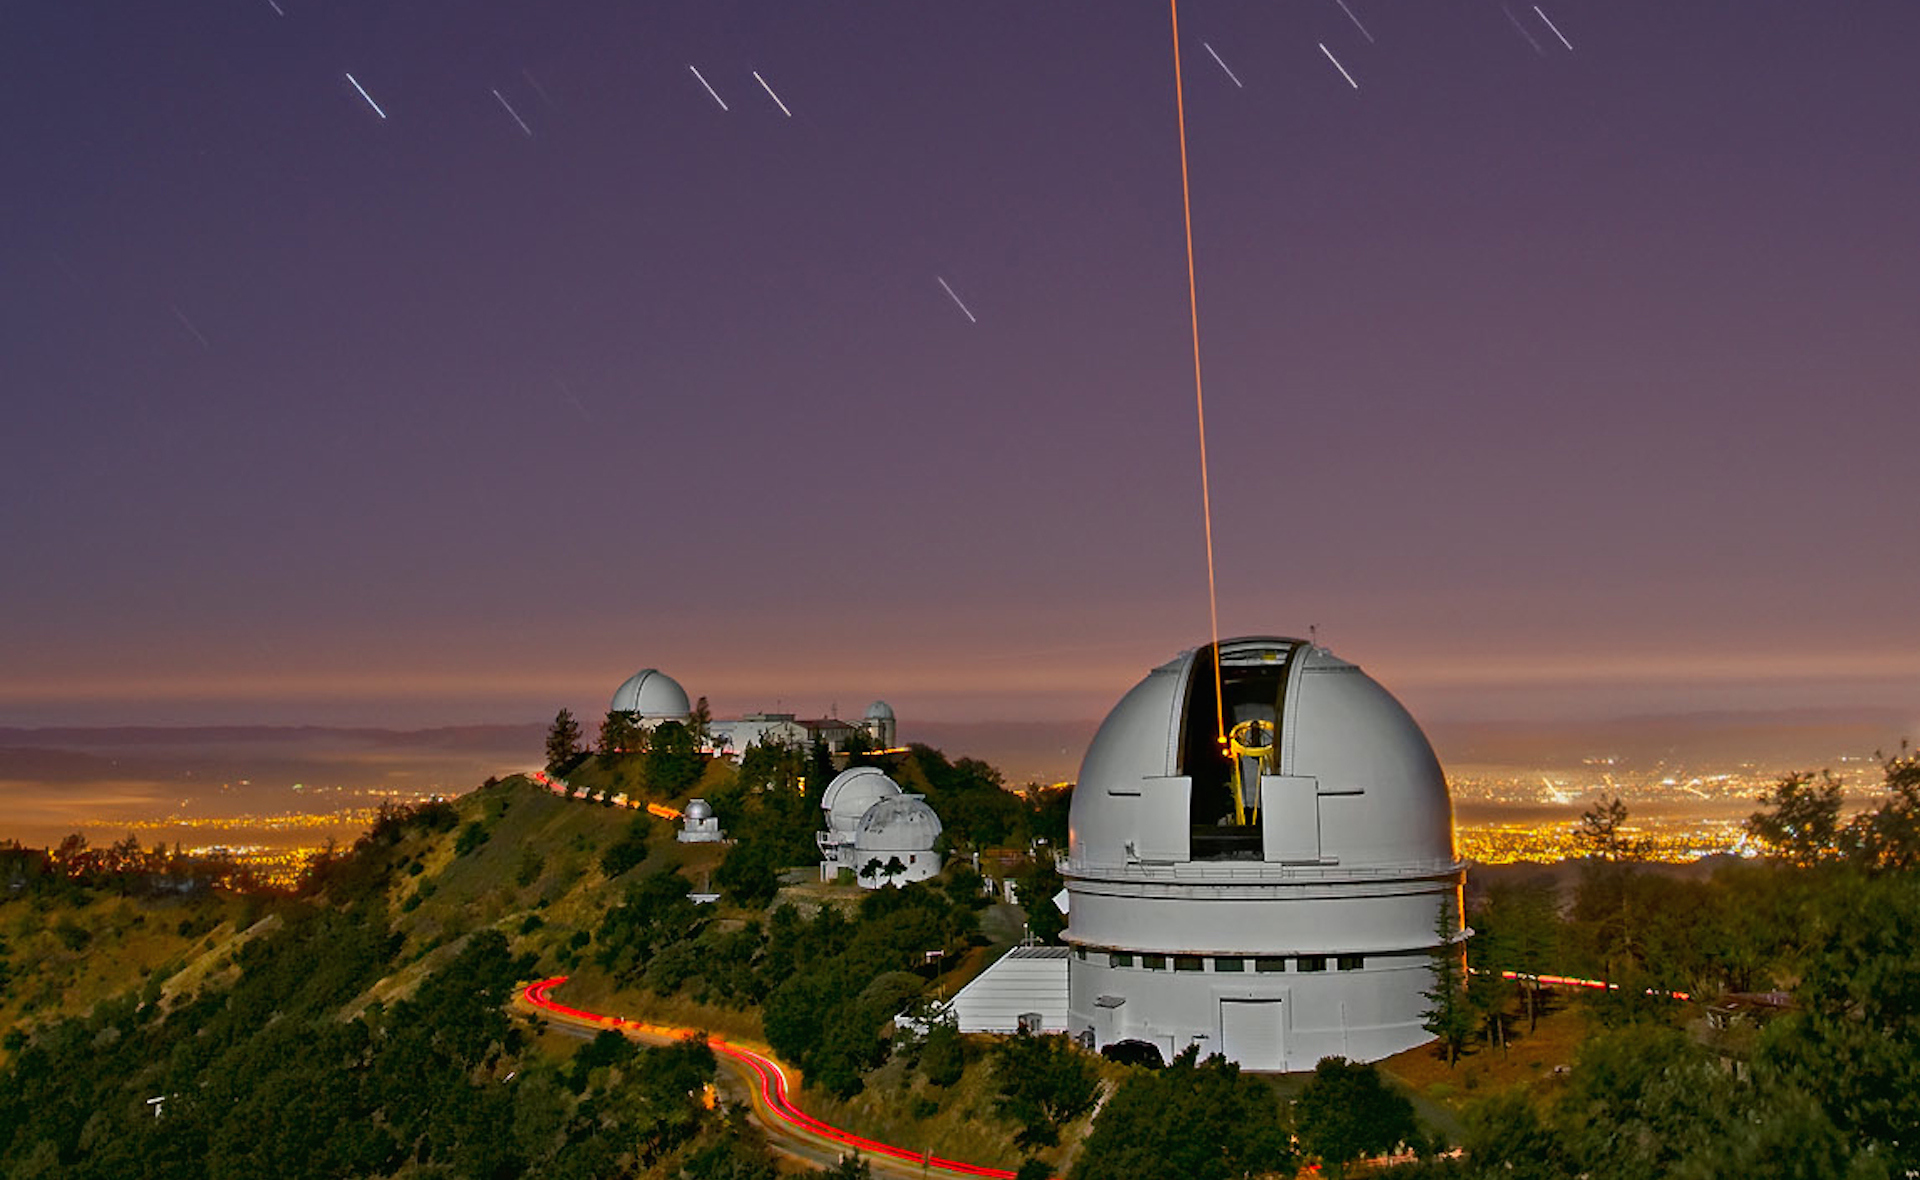 Agree, Lick observatory meter largest thanks for